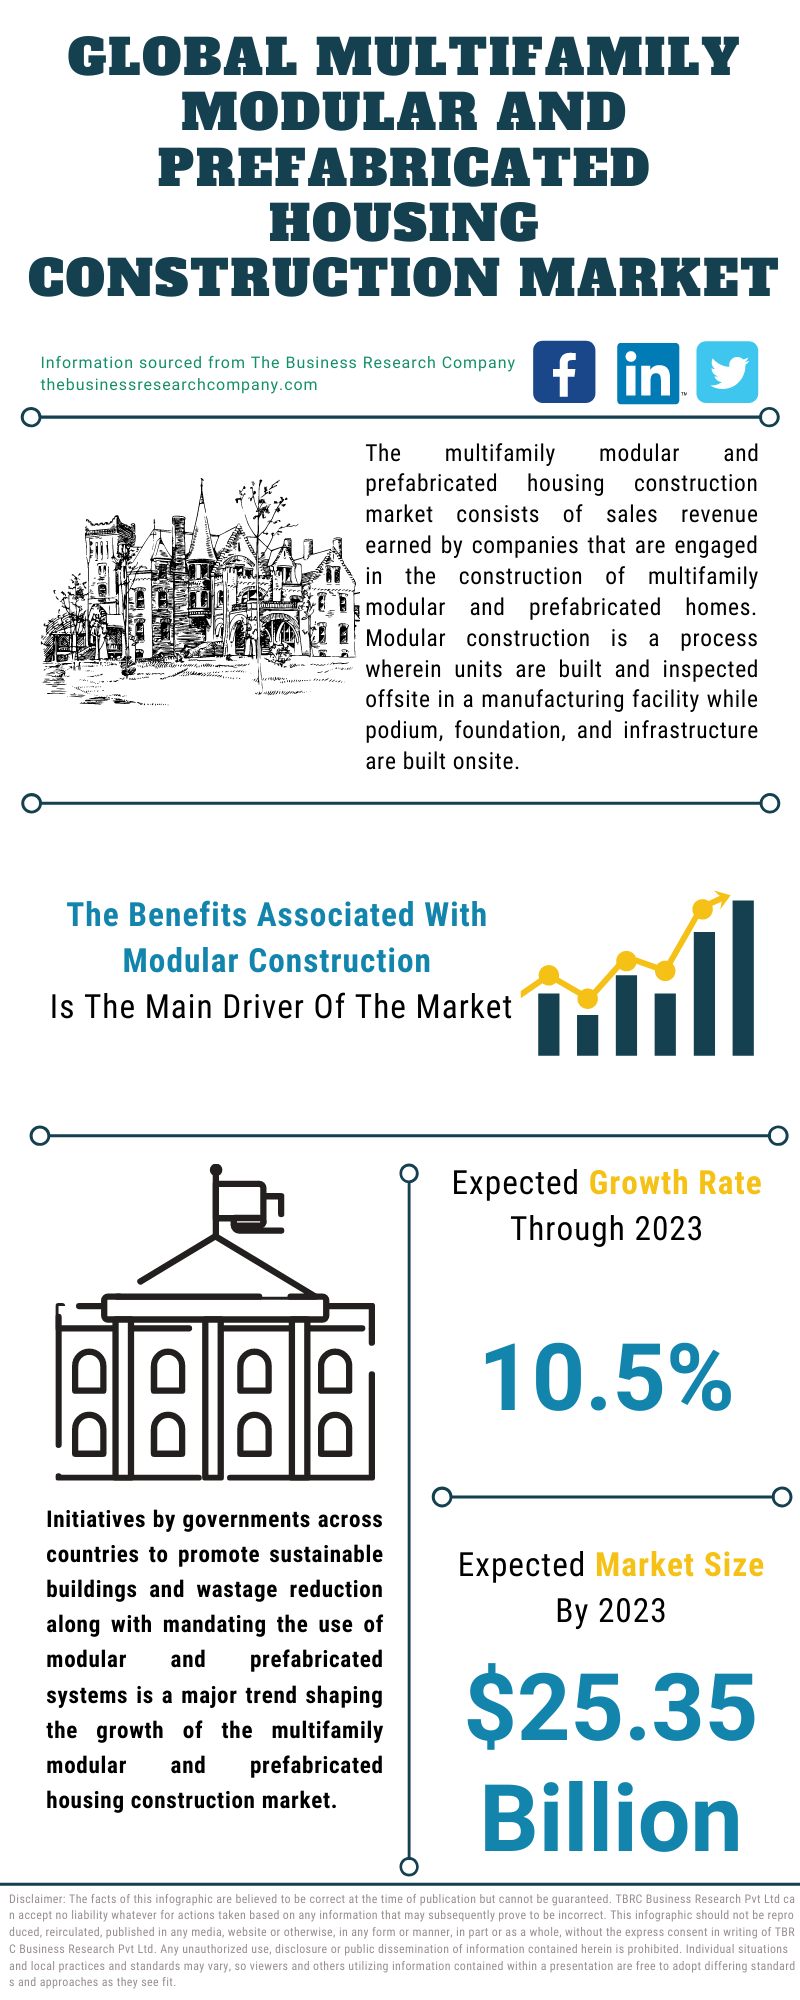 Multifamily Modular And Prefabricated Housing Construction Market